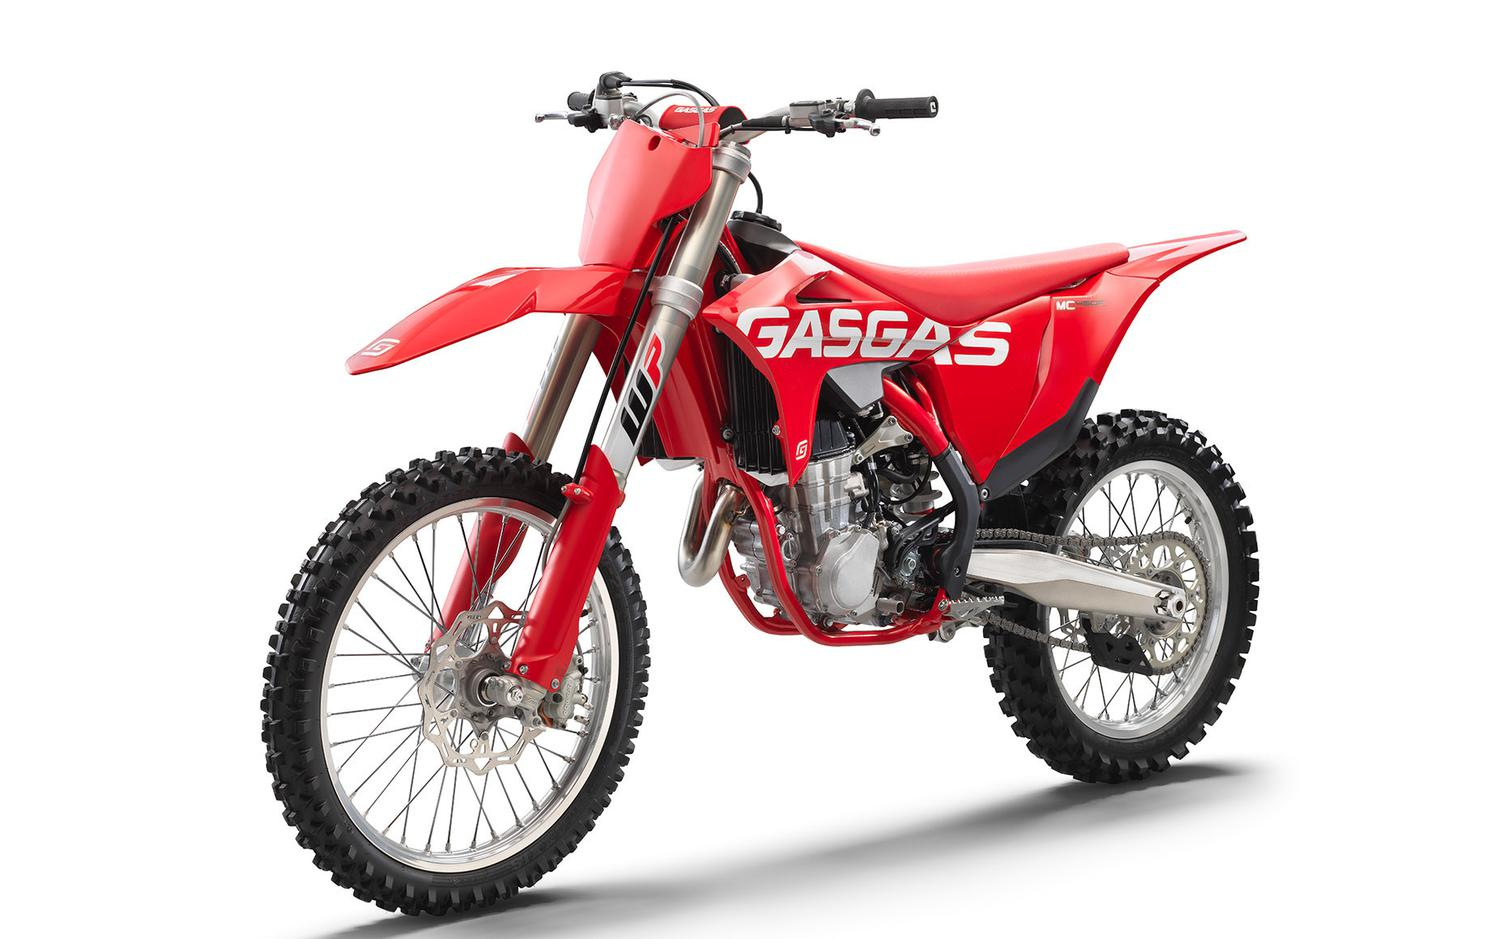 2021 Gas Gas MC 450F Frais inclus+Taxes